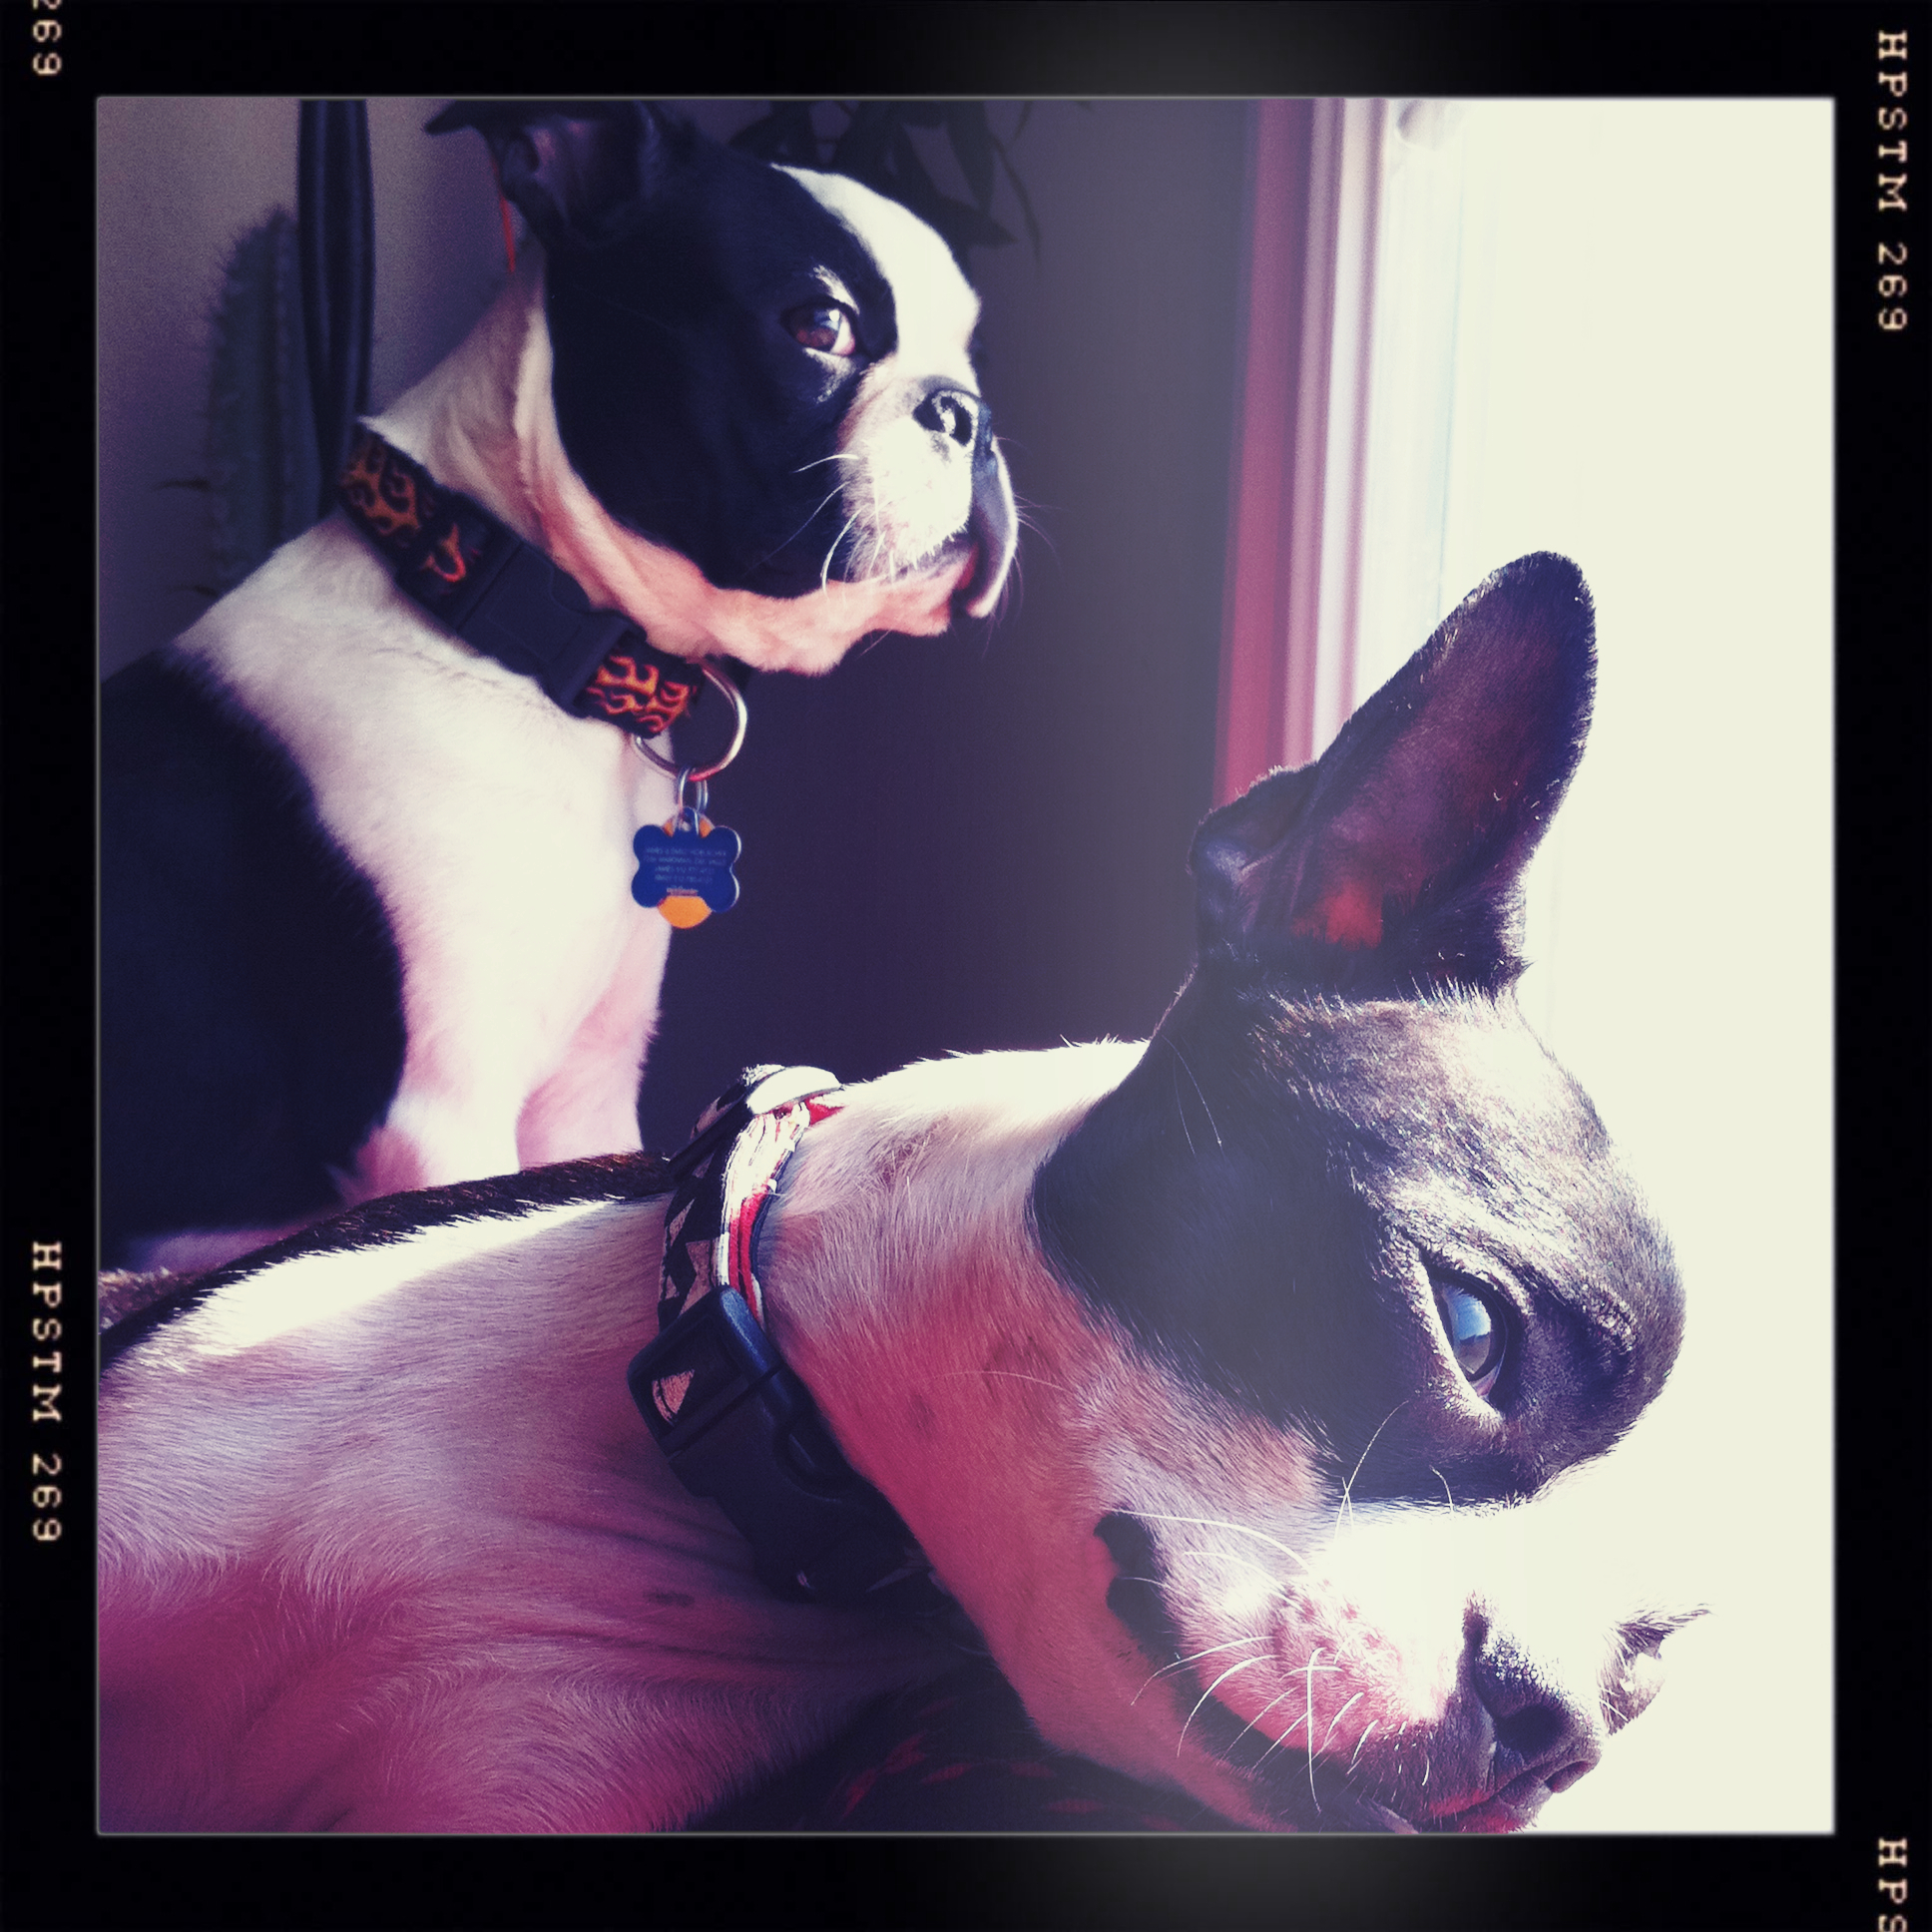 Obligatory photo of my nerds, Gus and Gilley.